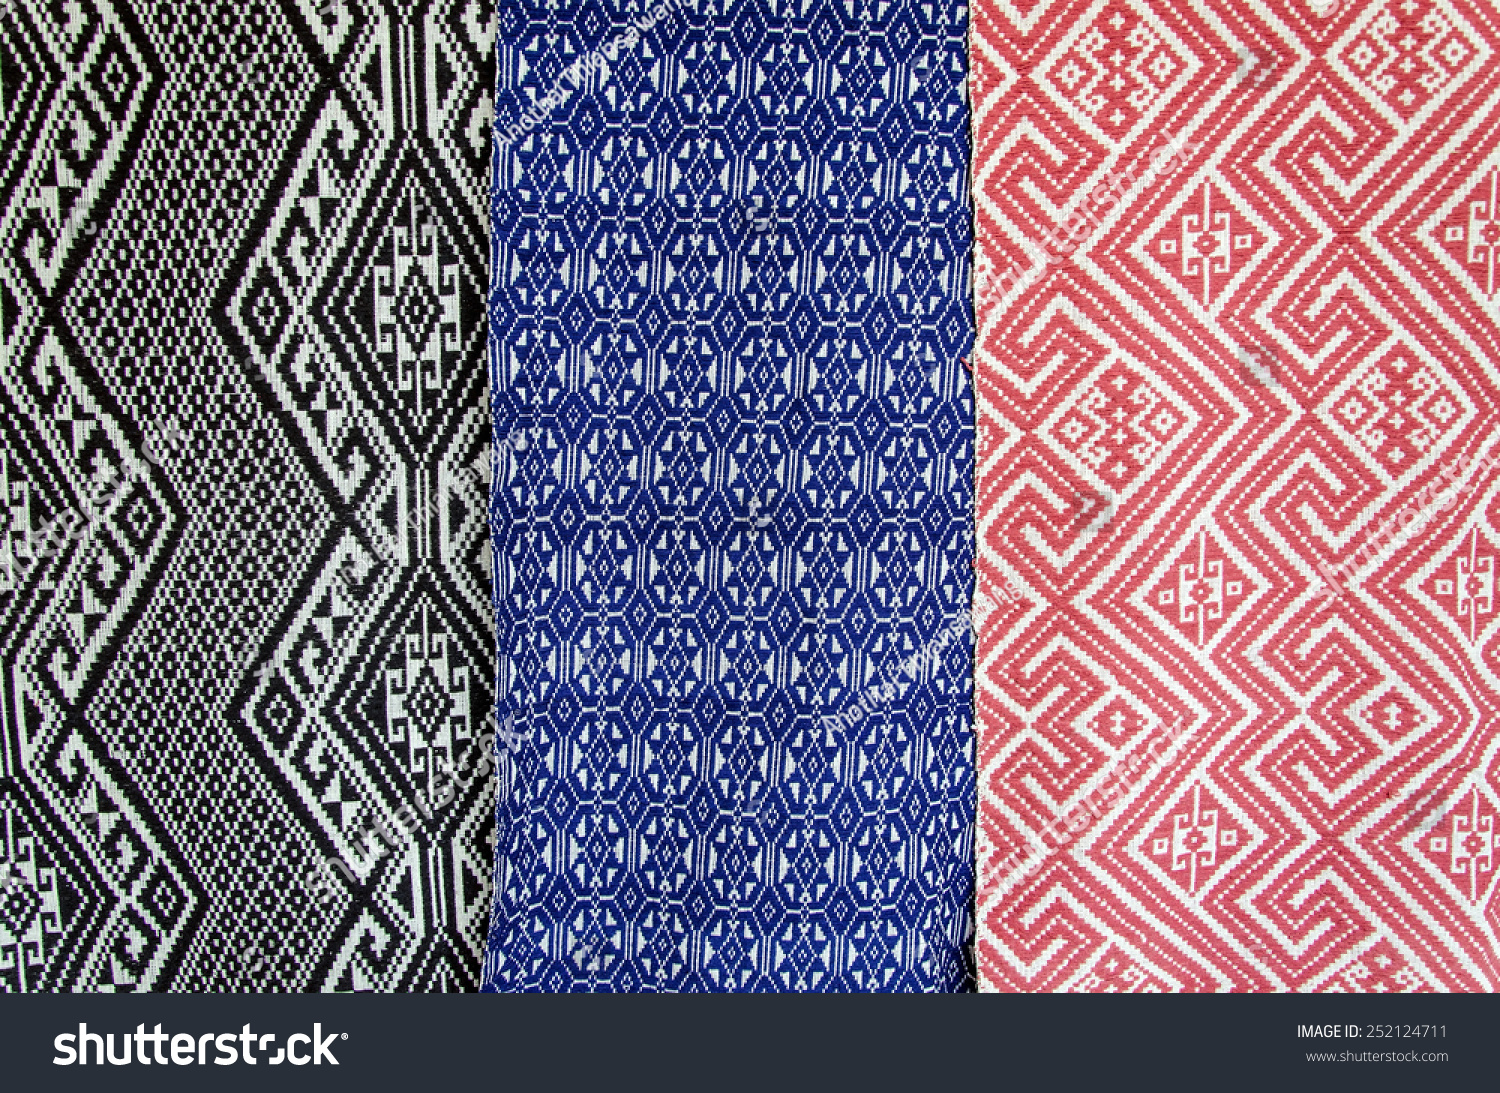 Laos embroidered fabric texture background stock photo